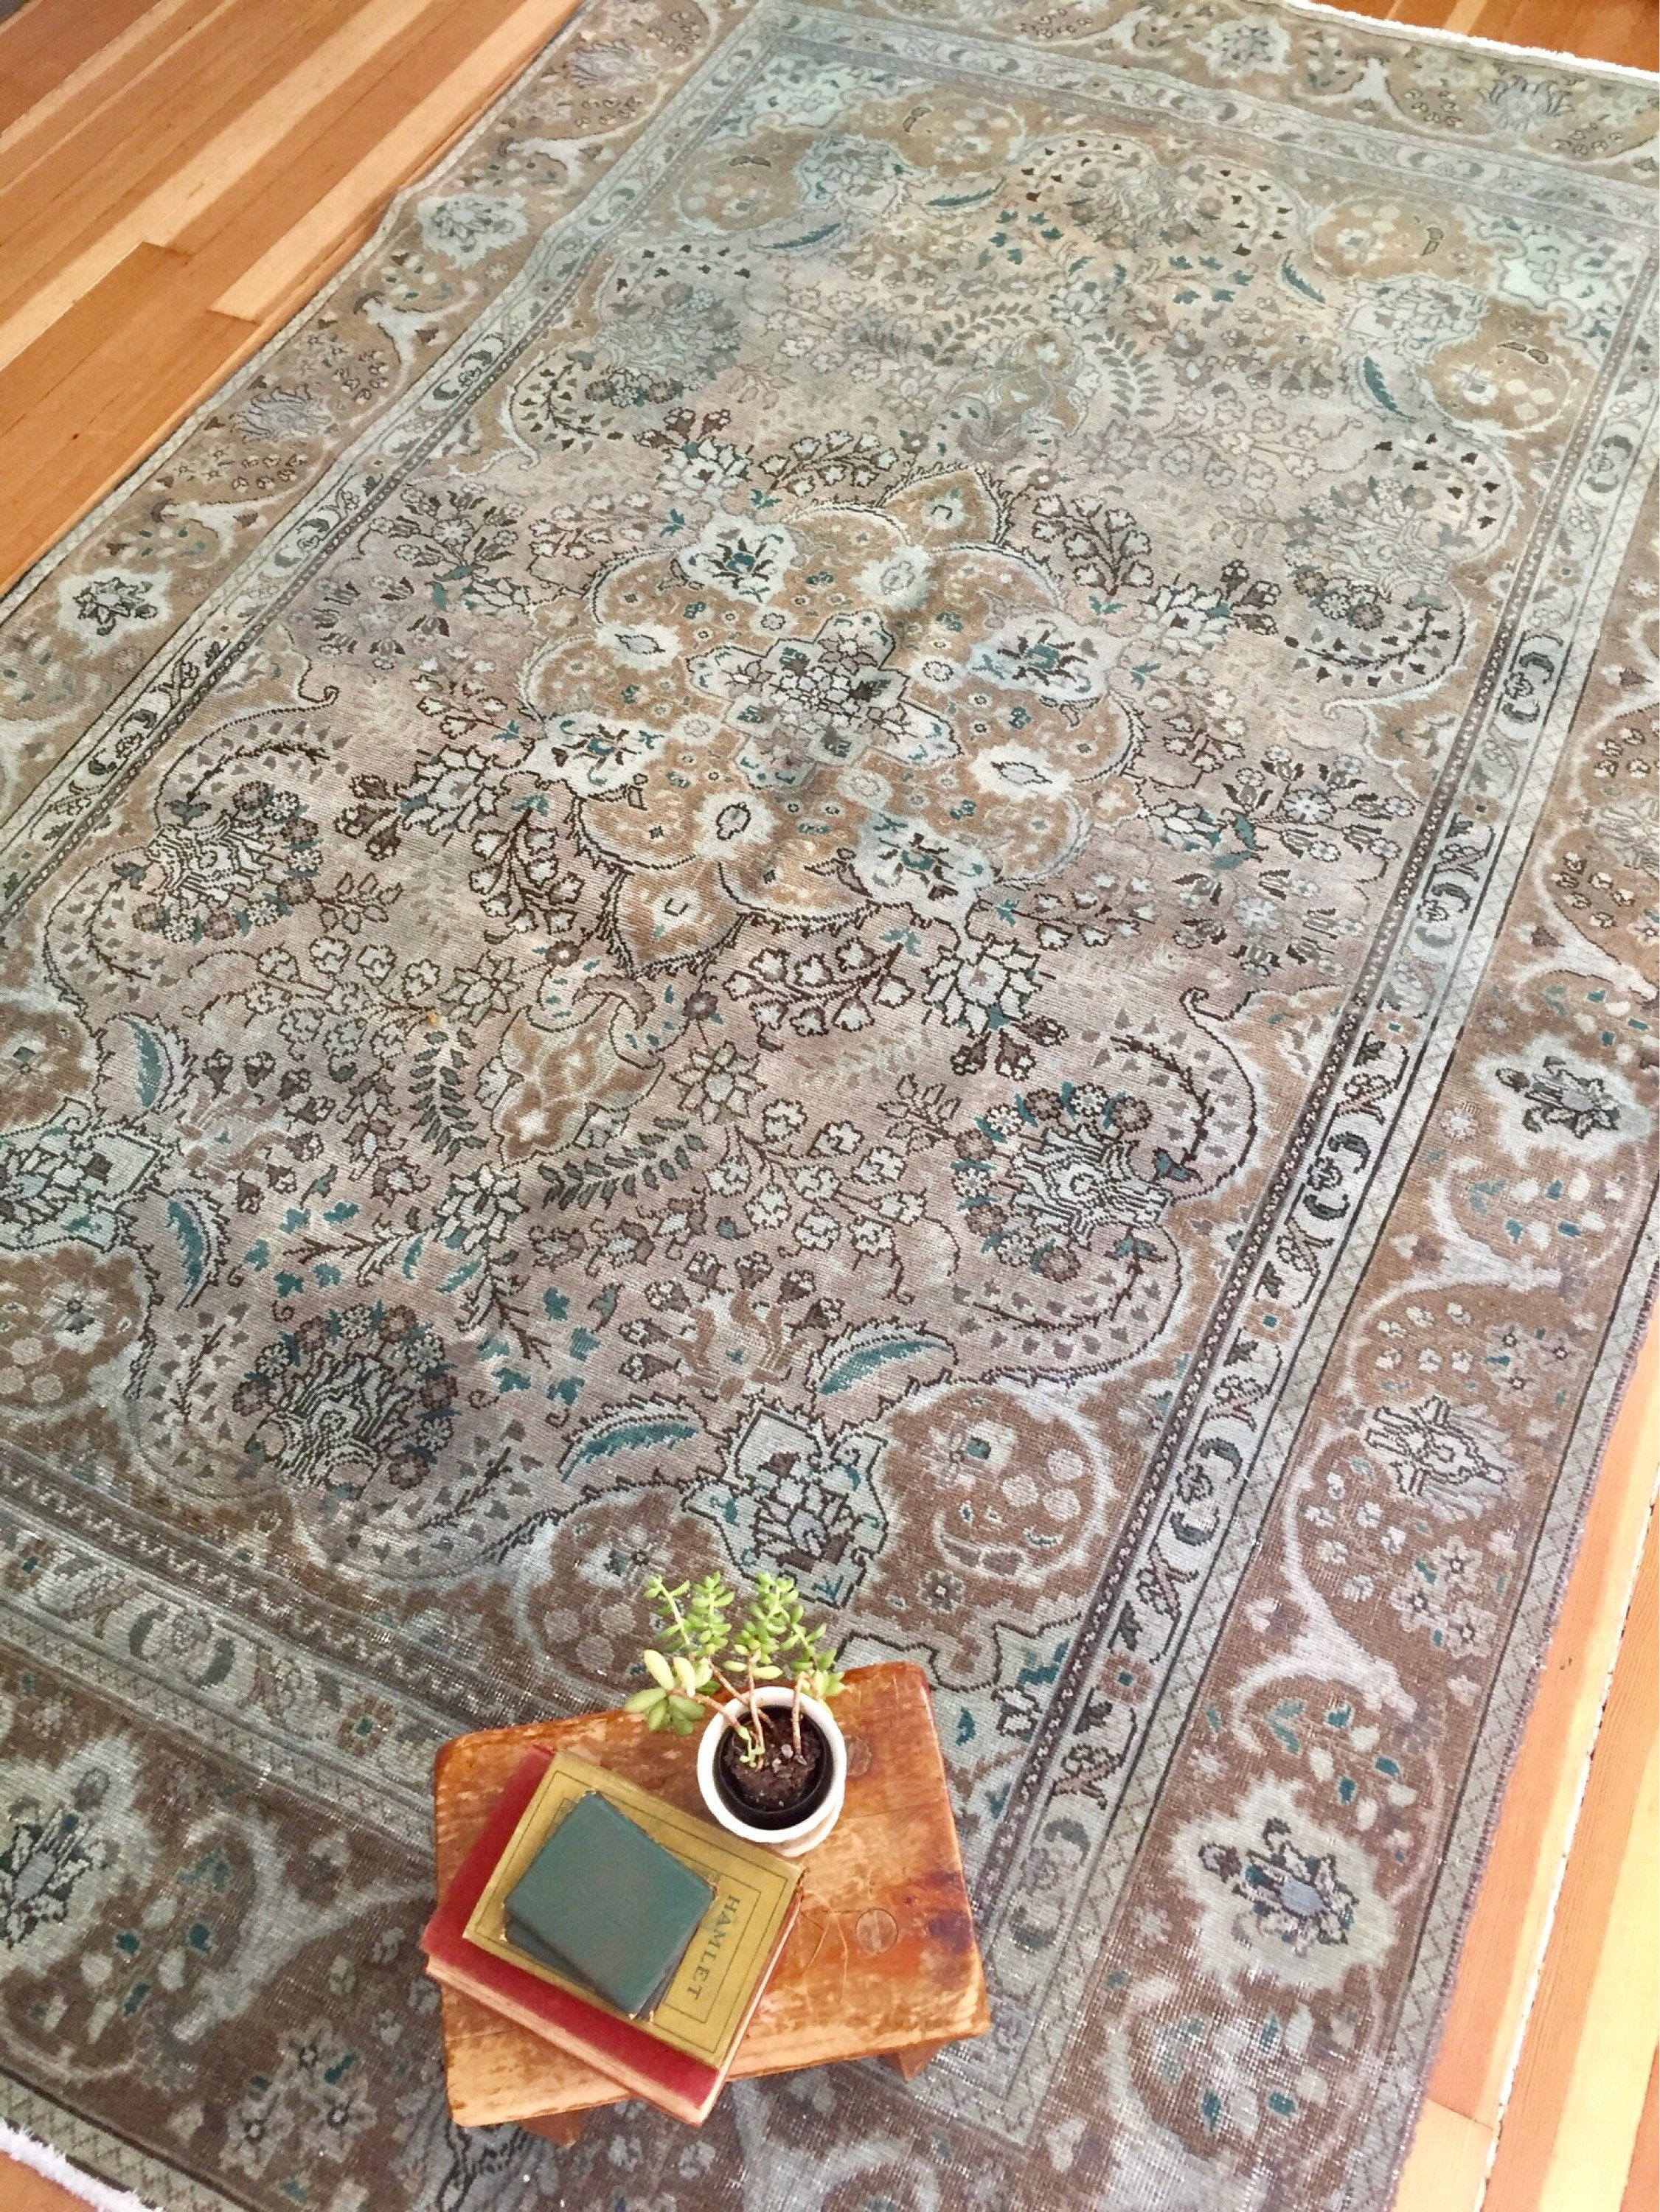 i schemeyou inspired layering can bohemian rugs the keep layered img no plethora your adding matter in that is of textiles taste part color love most rug home patterns or rooms decor